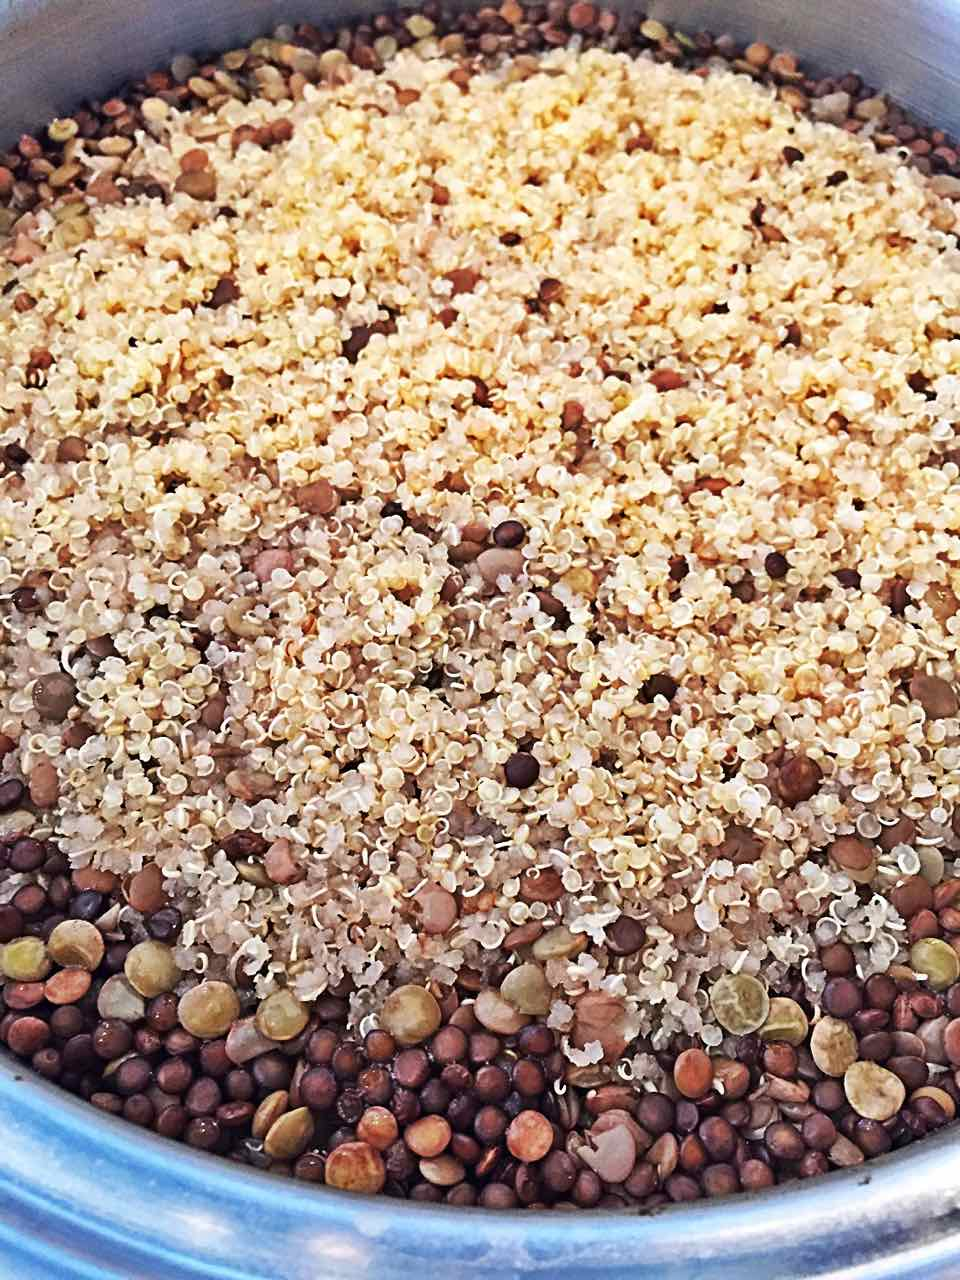 Cooked Quinoa and Lentils in One Pot